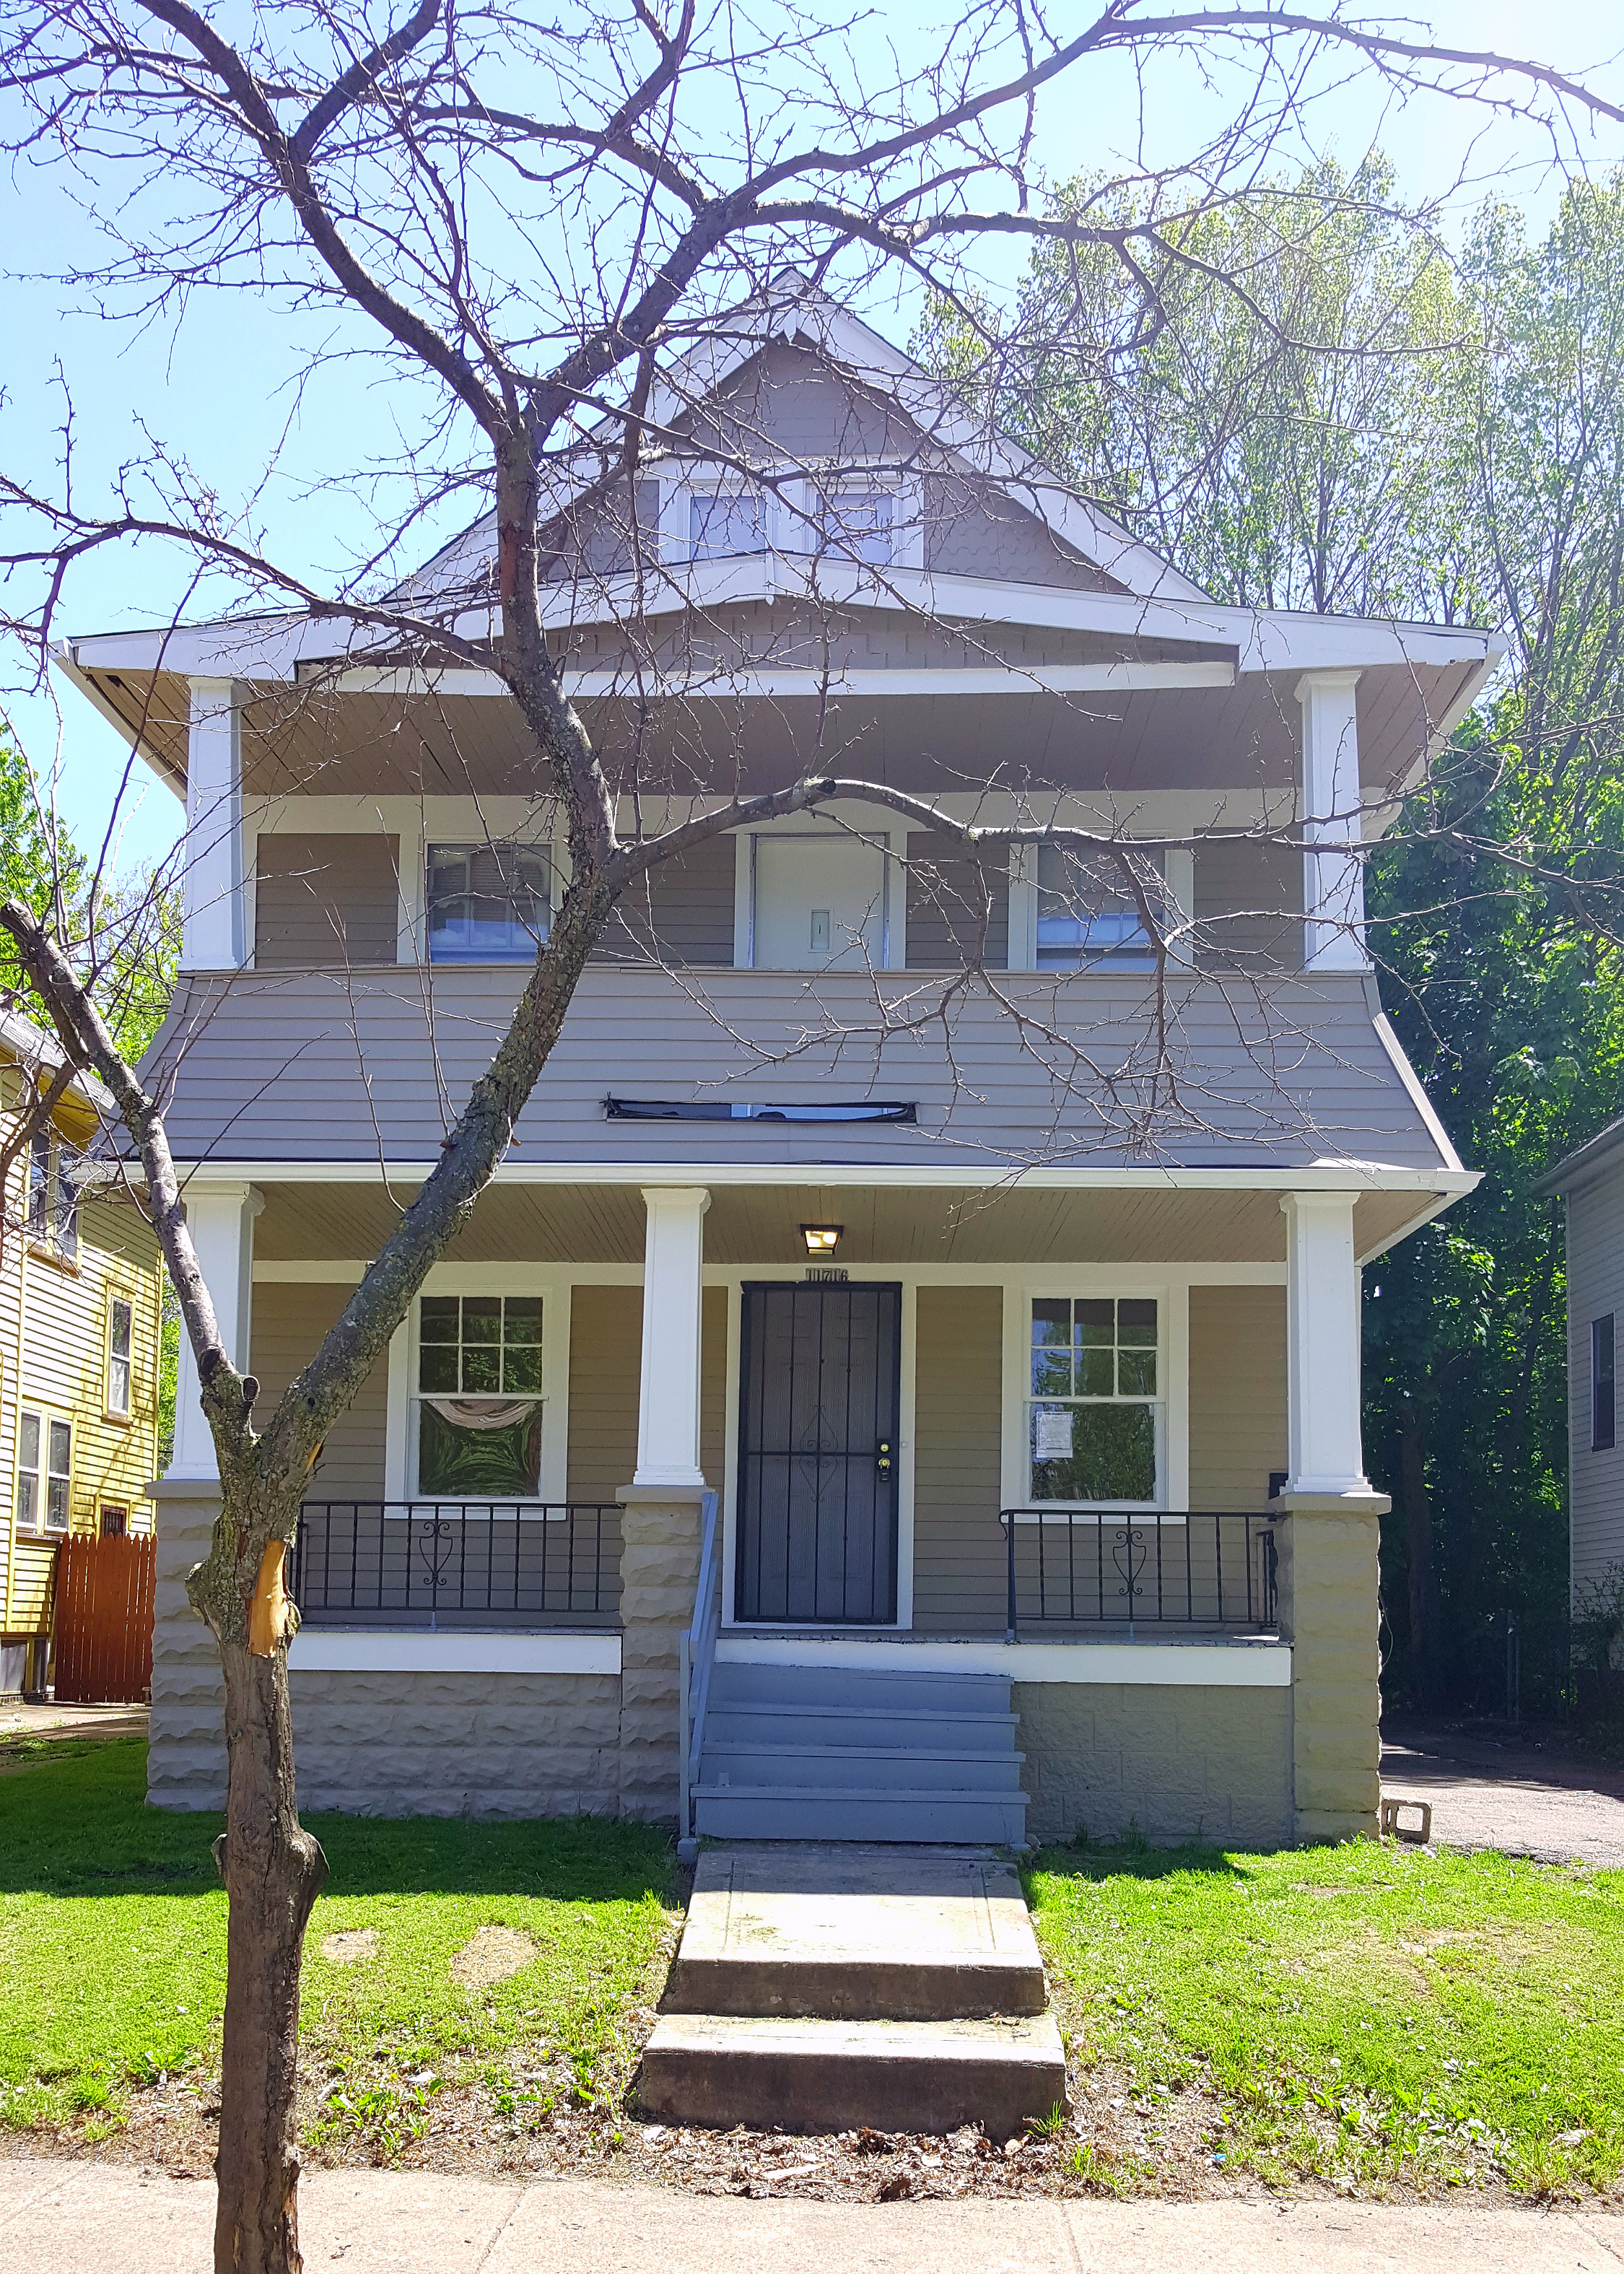 11716 Parkhill Ave., Cleveland | 5 bed 3 bath | 1,408 Sq. Ft. | $23,000